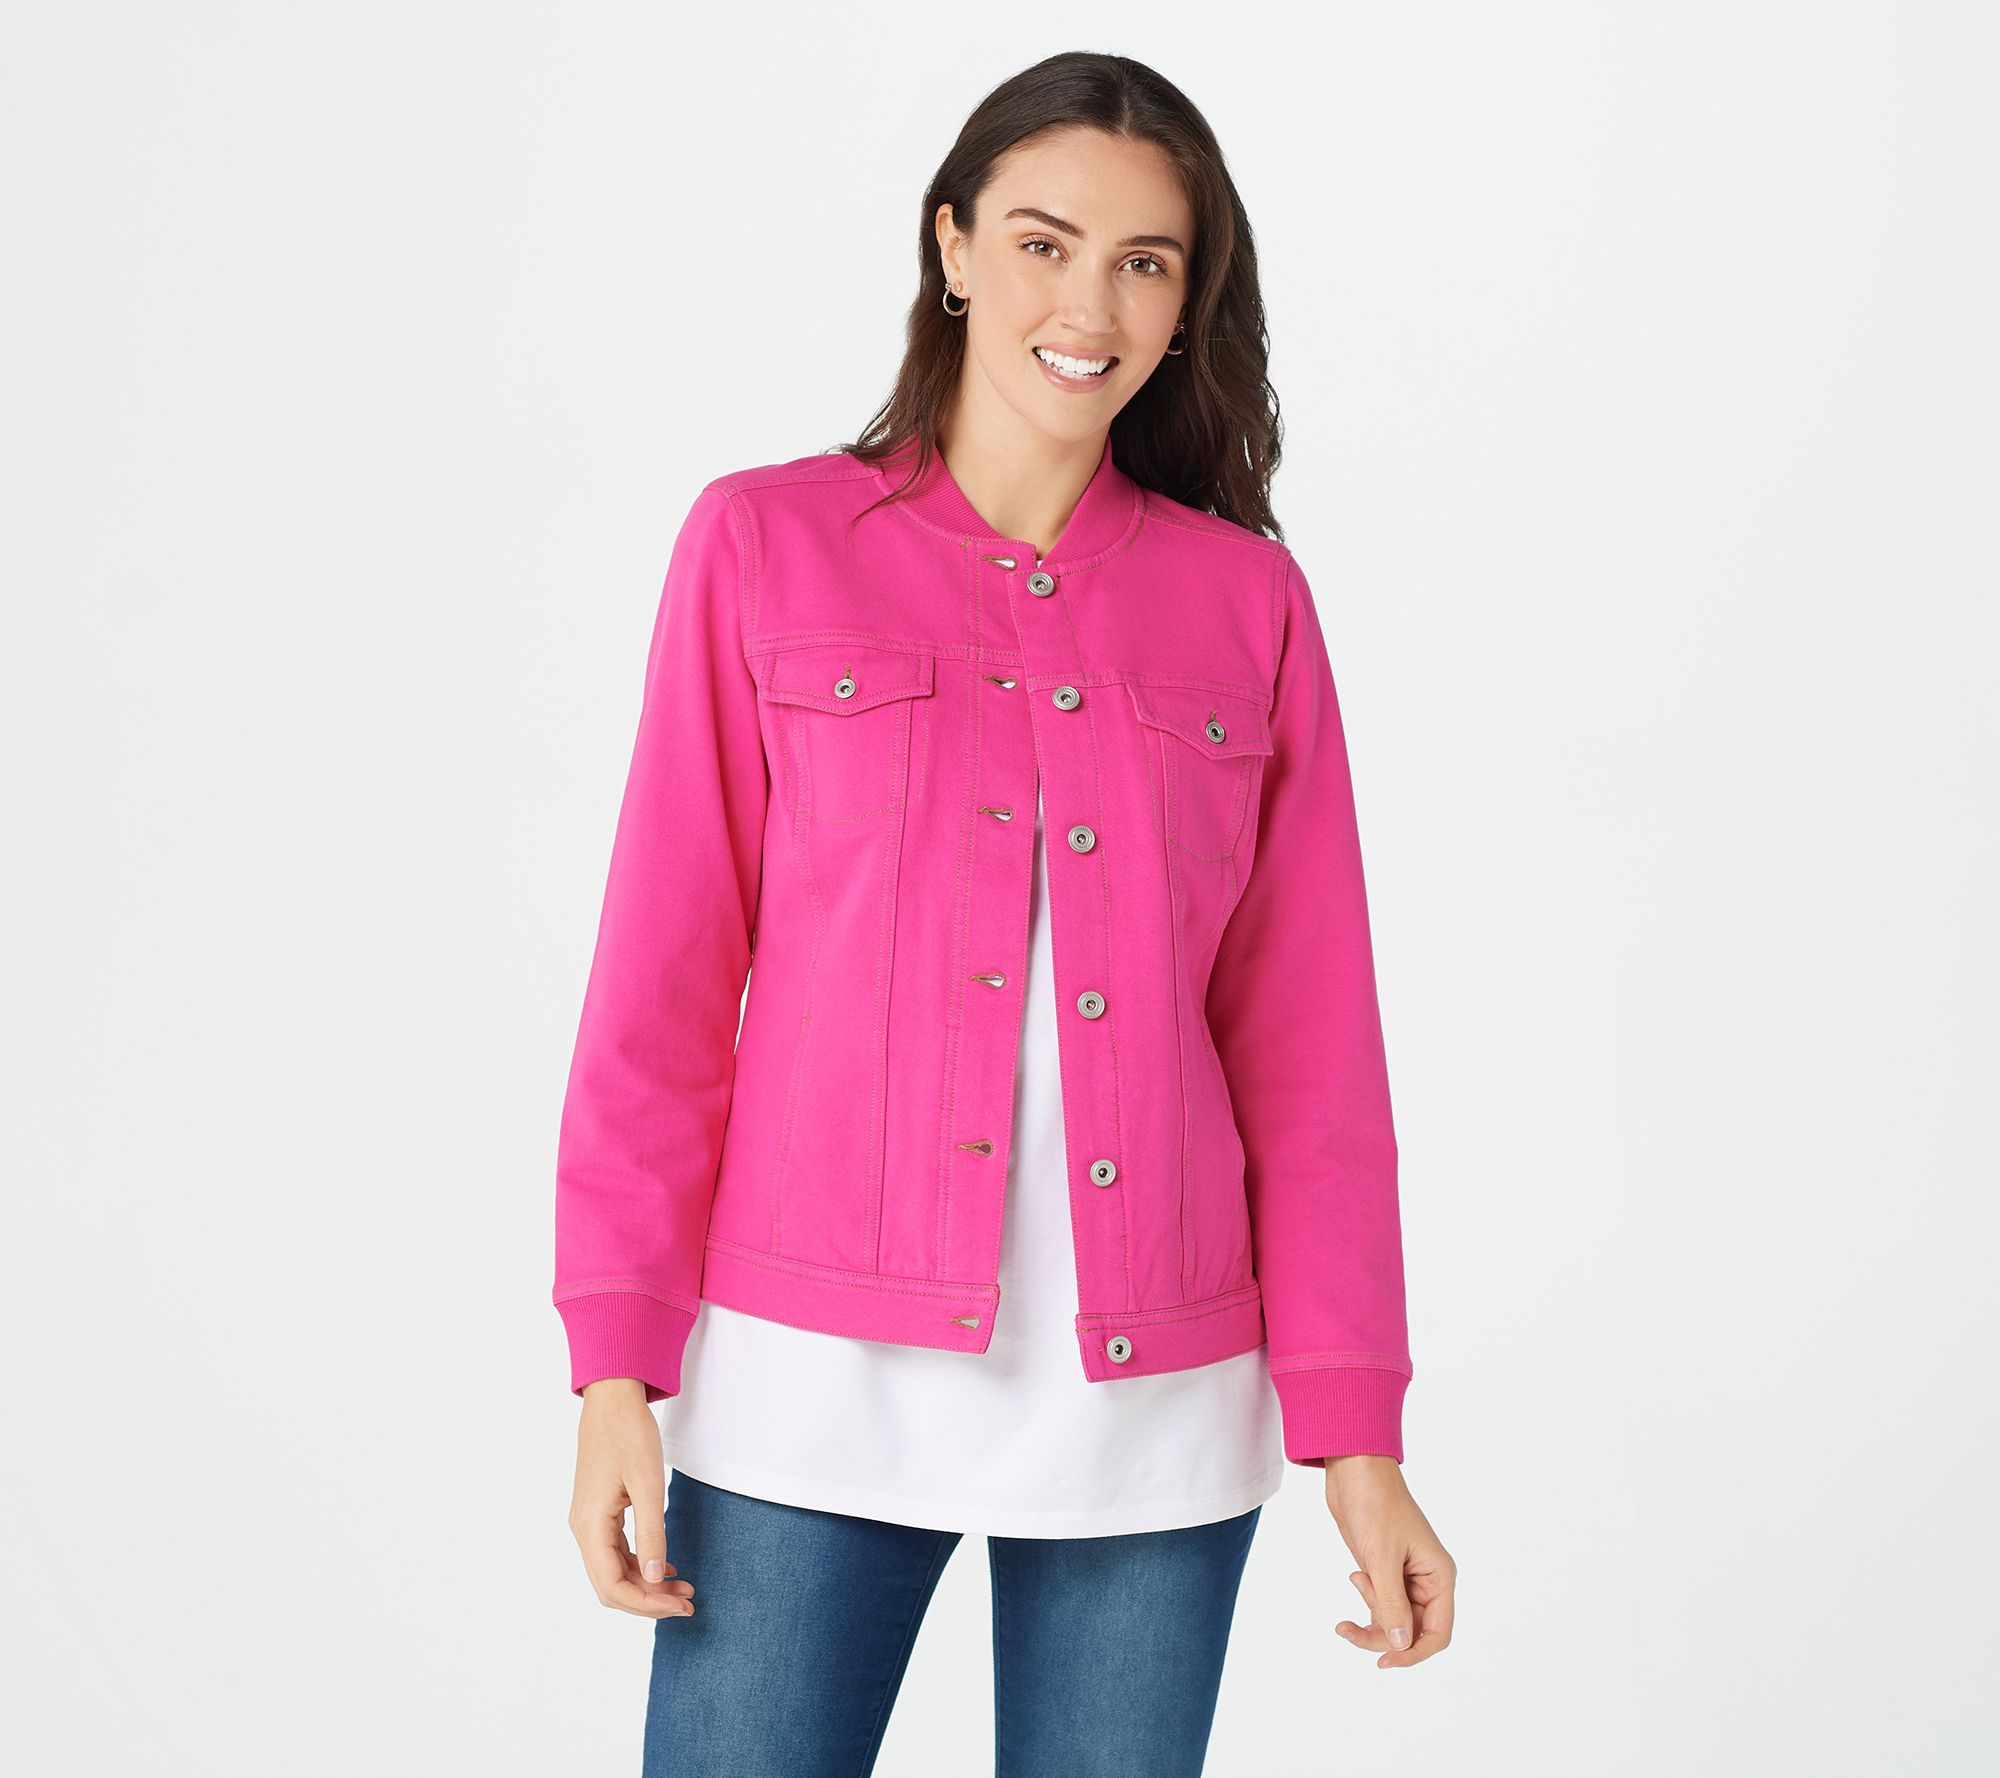 new product 021a7 2b8f9 Denim & Co. Comfy Knit Button Front Jean Jacket with Rib Trim — QVC.com